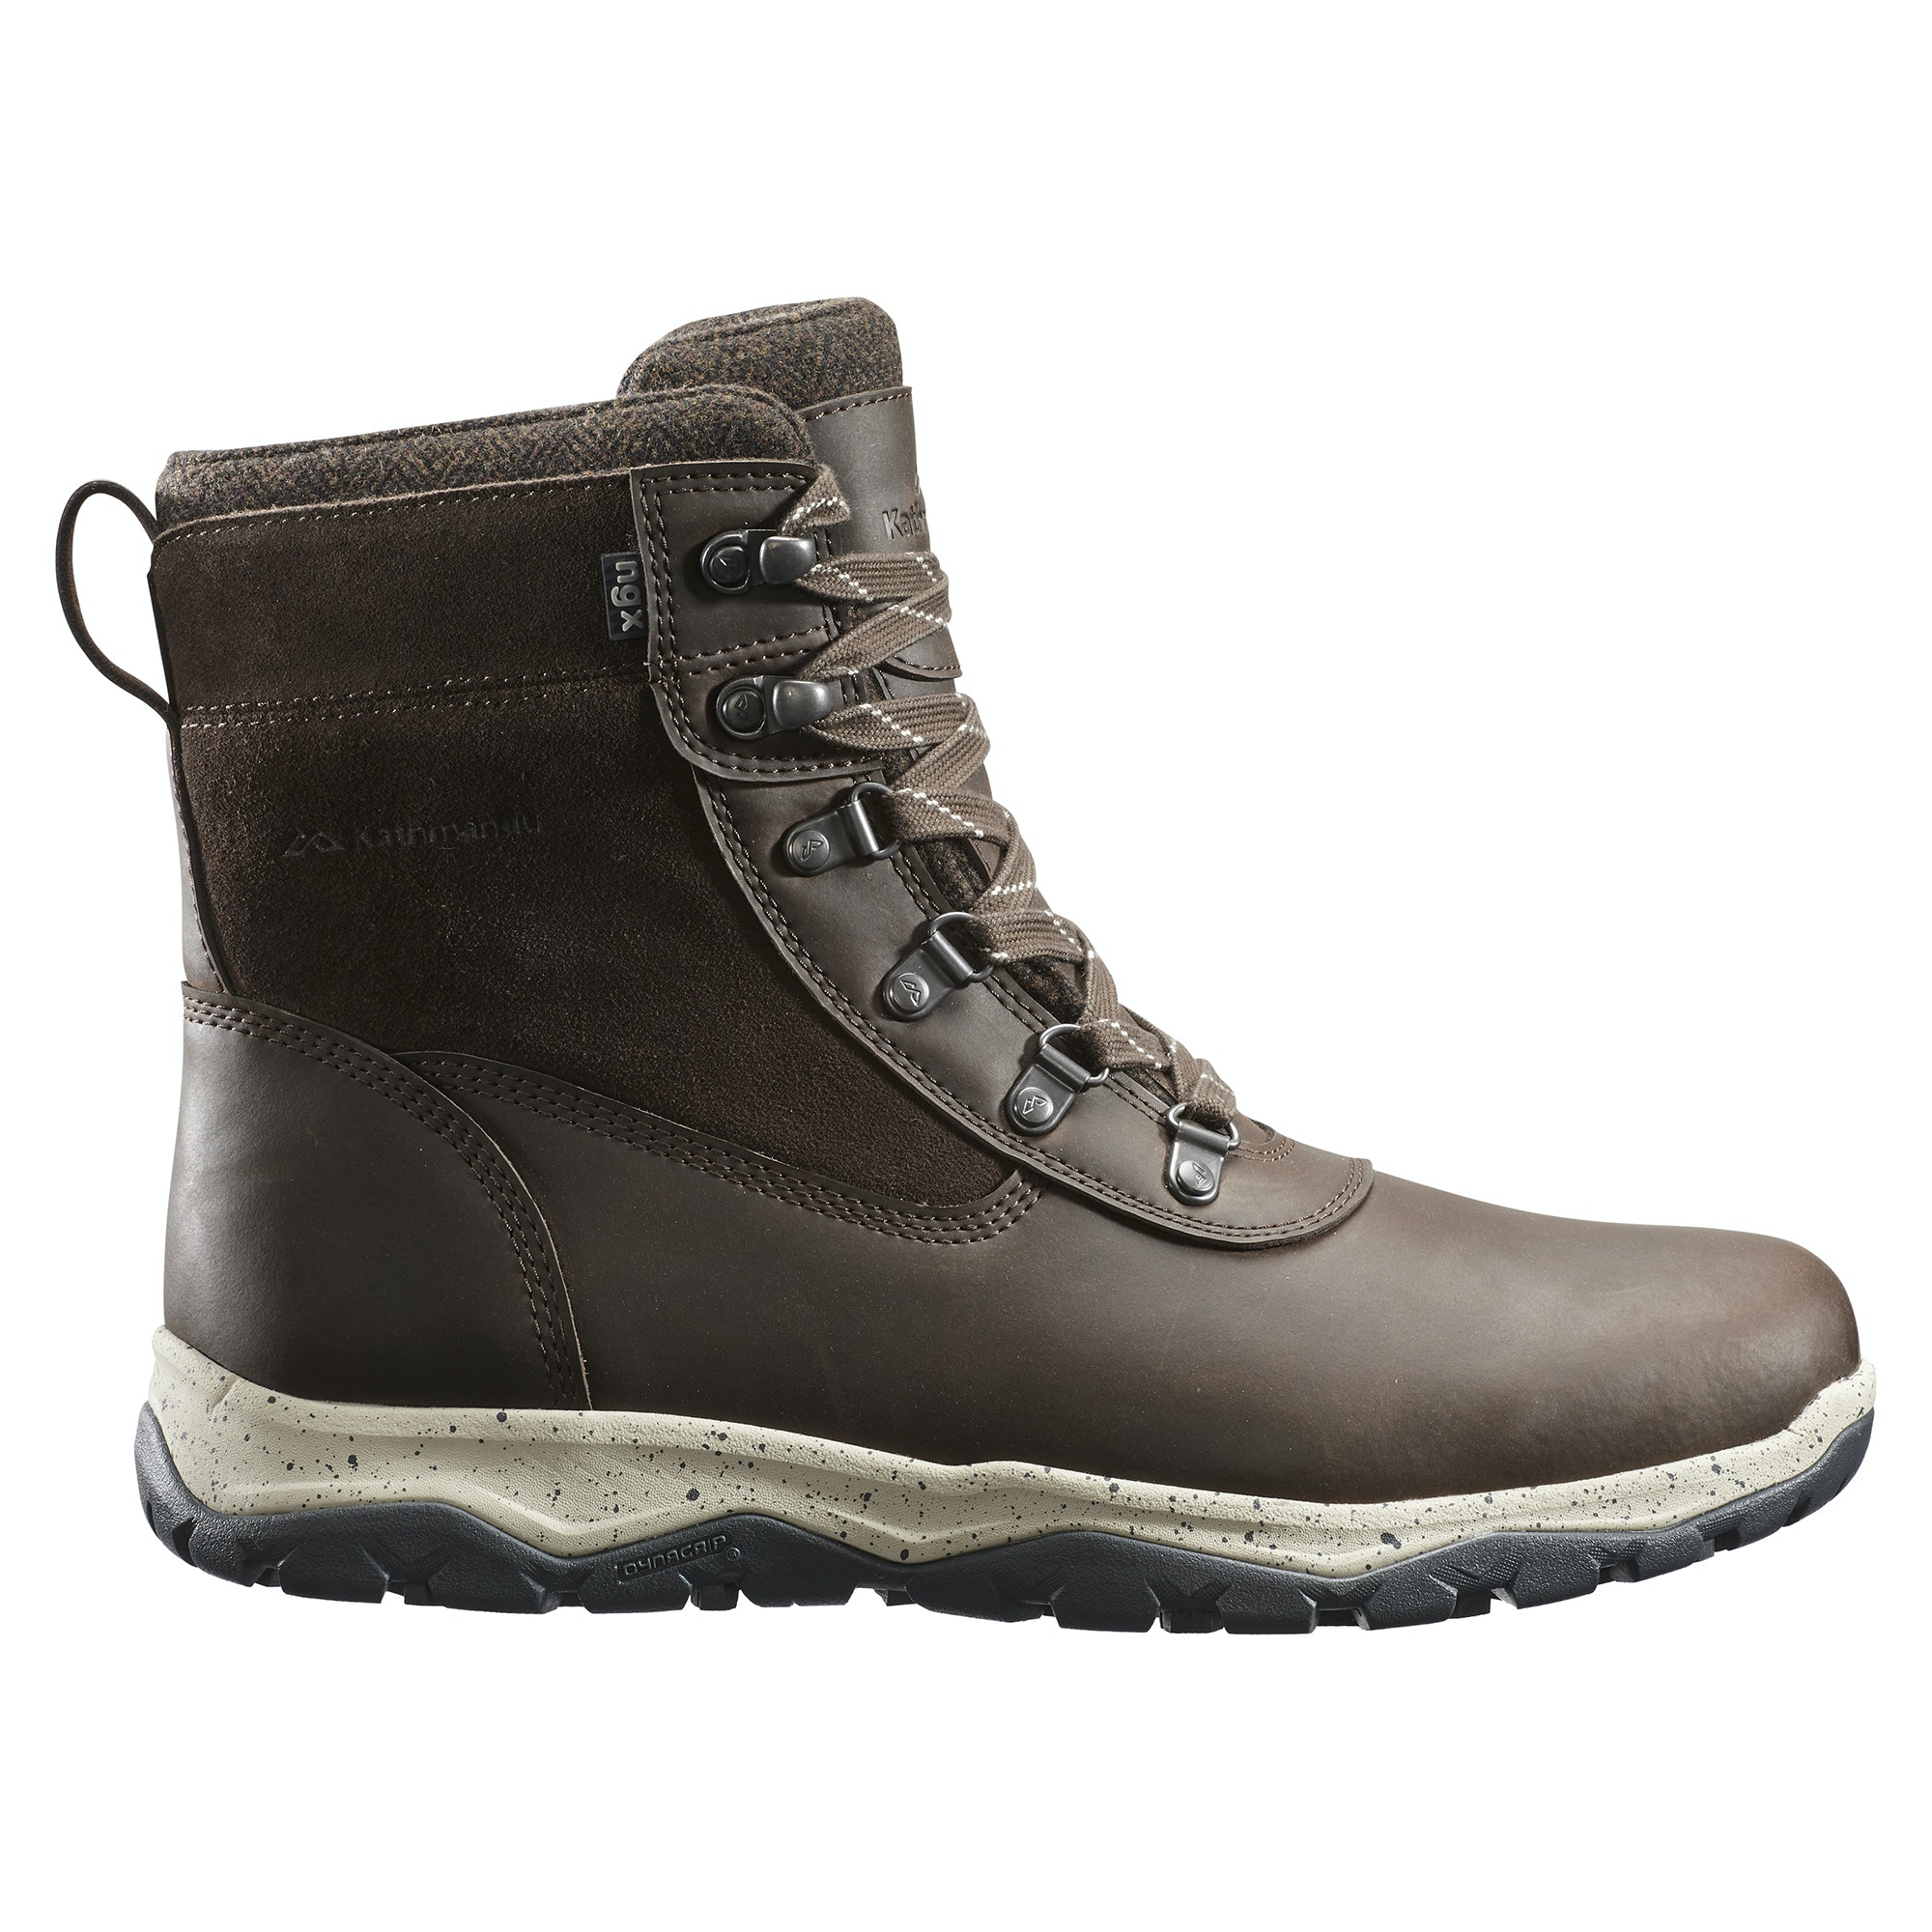 12 Best winter boots images | Winter boots, Boots, Shoes